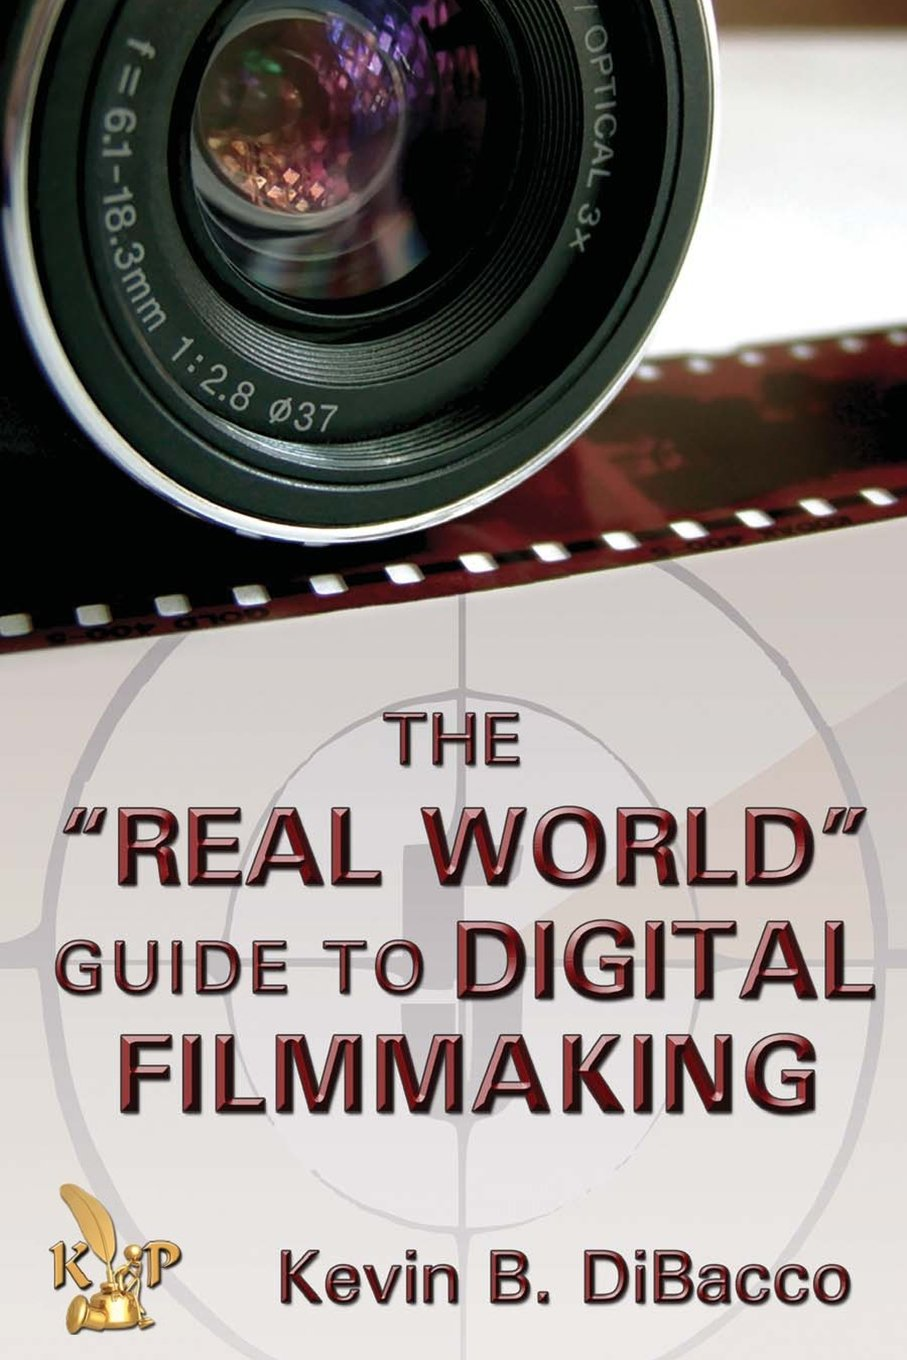 The Real World Guide to Digital Filmmaking by Keith Publications LLC